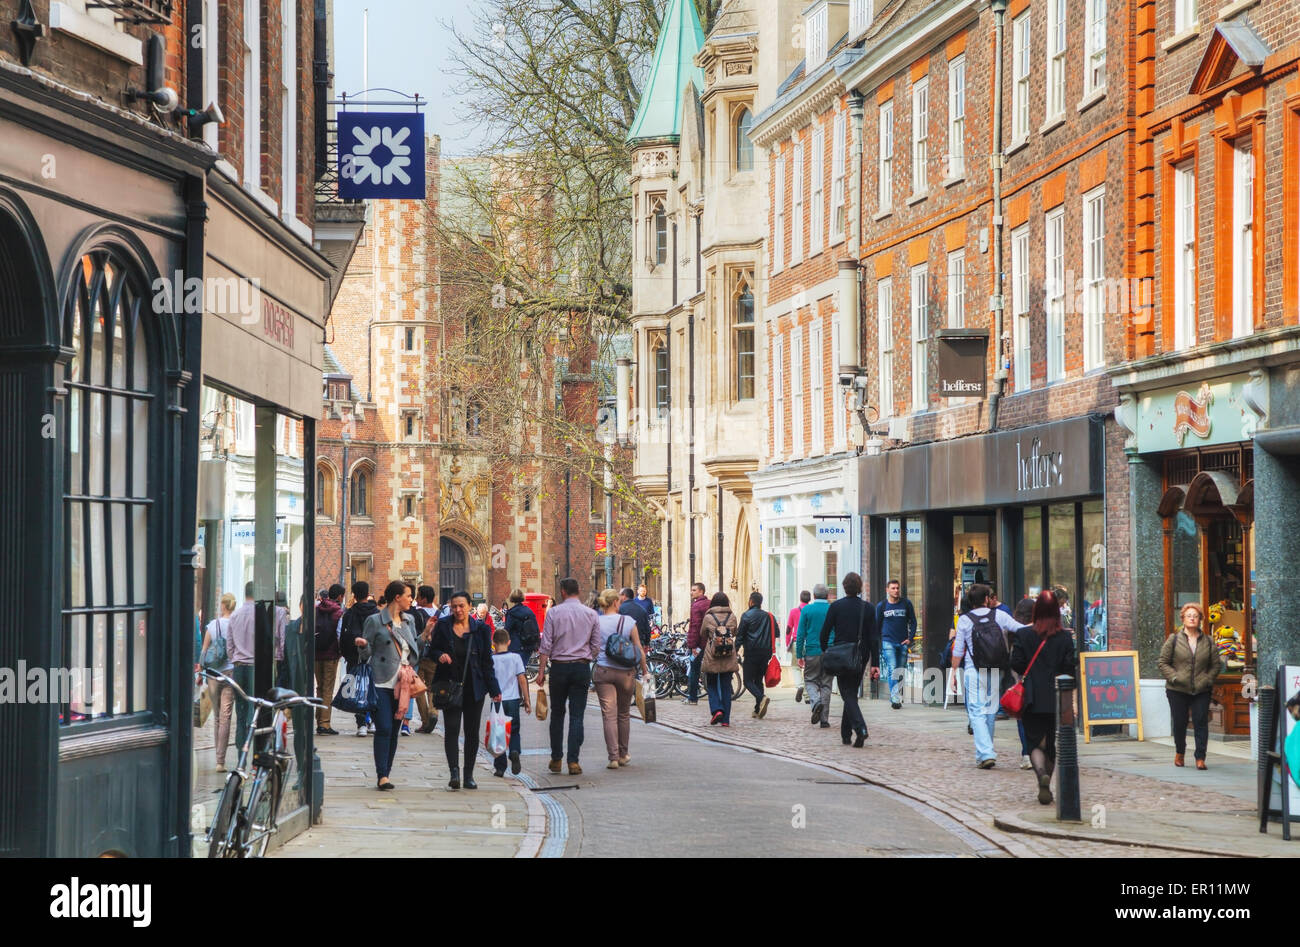 Cambridge, UK - April 9: Old Trinity street on April 9, 2015 in Cambridge, UK. It's a university city. - Stock Image